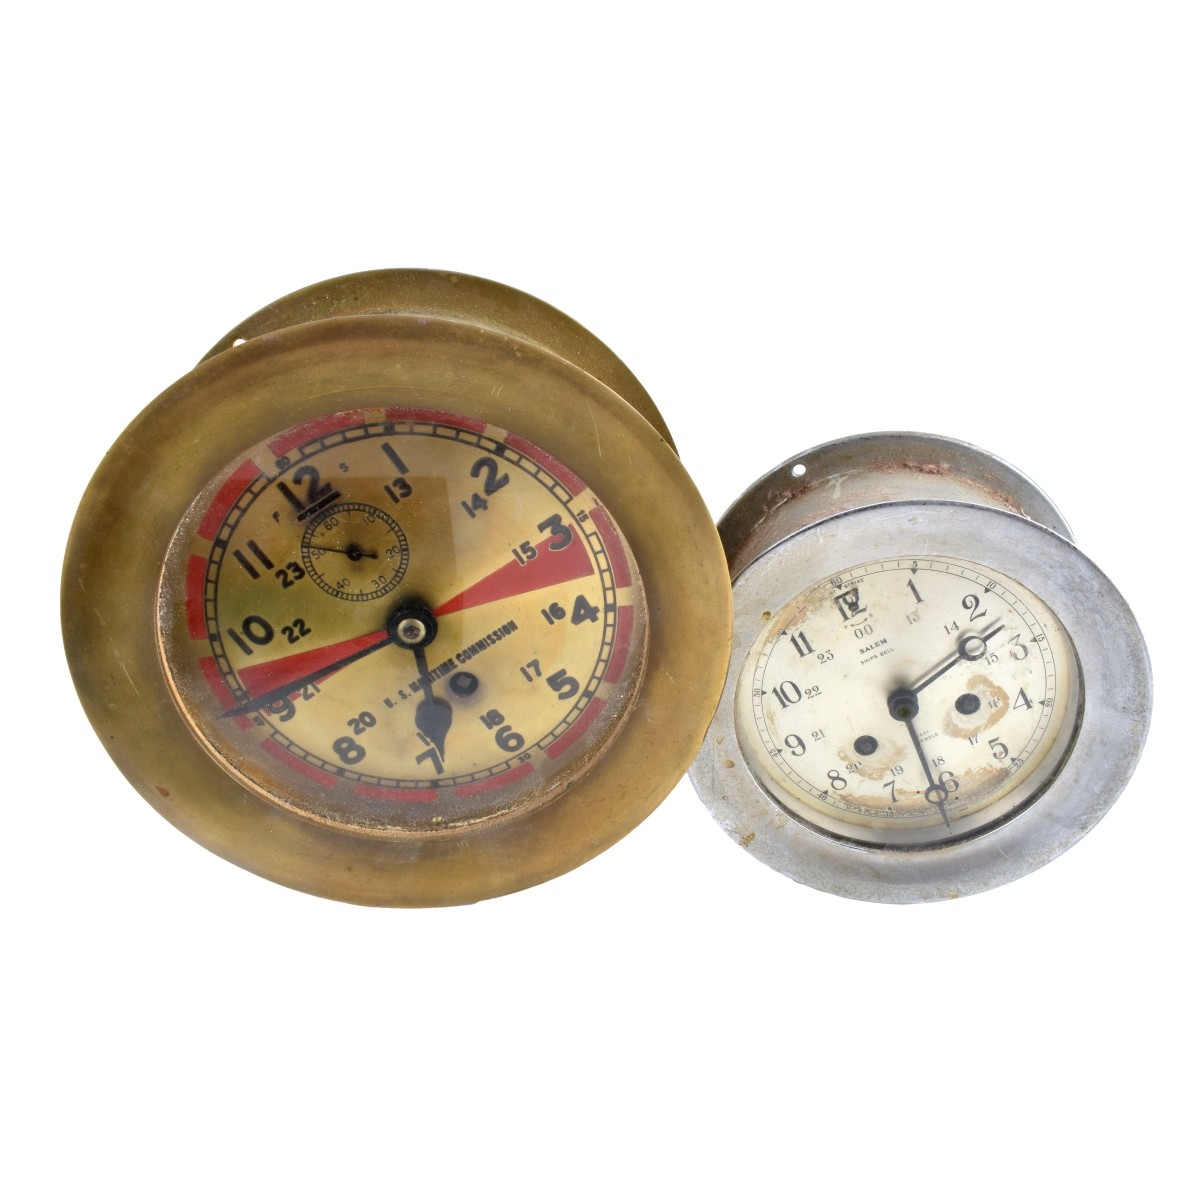 Vintage Clocks and Barometers